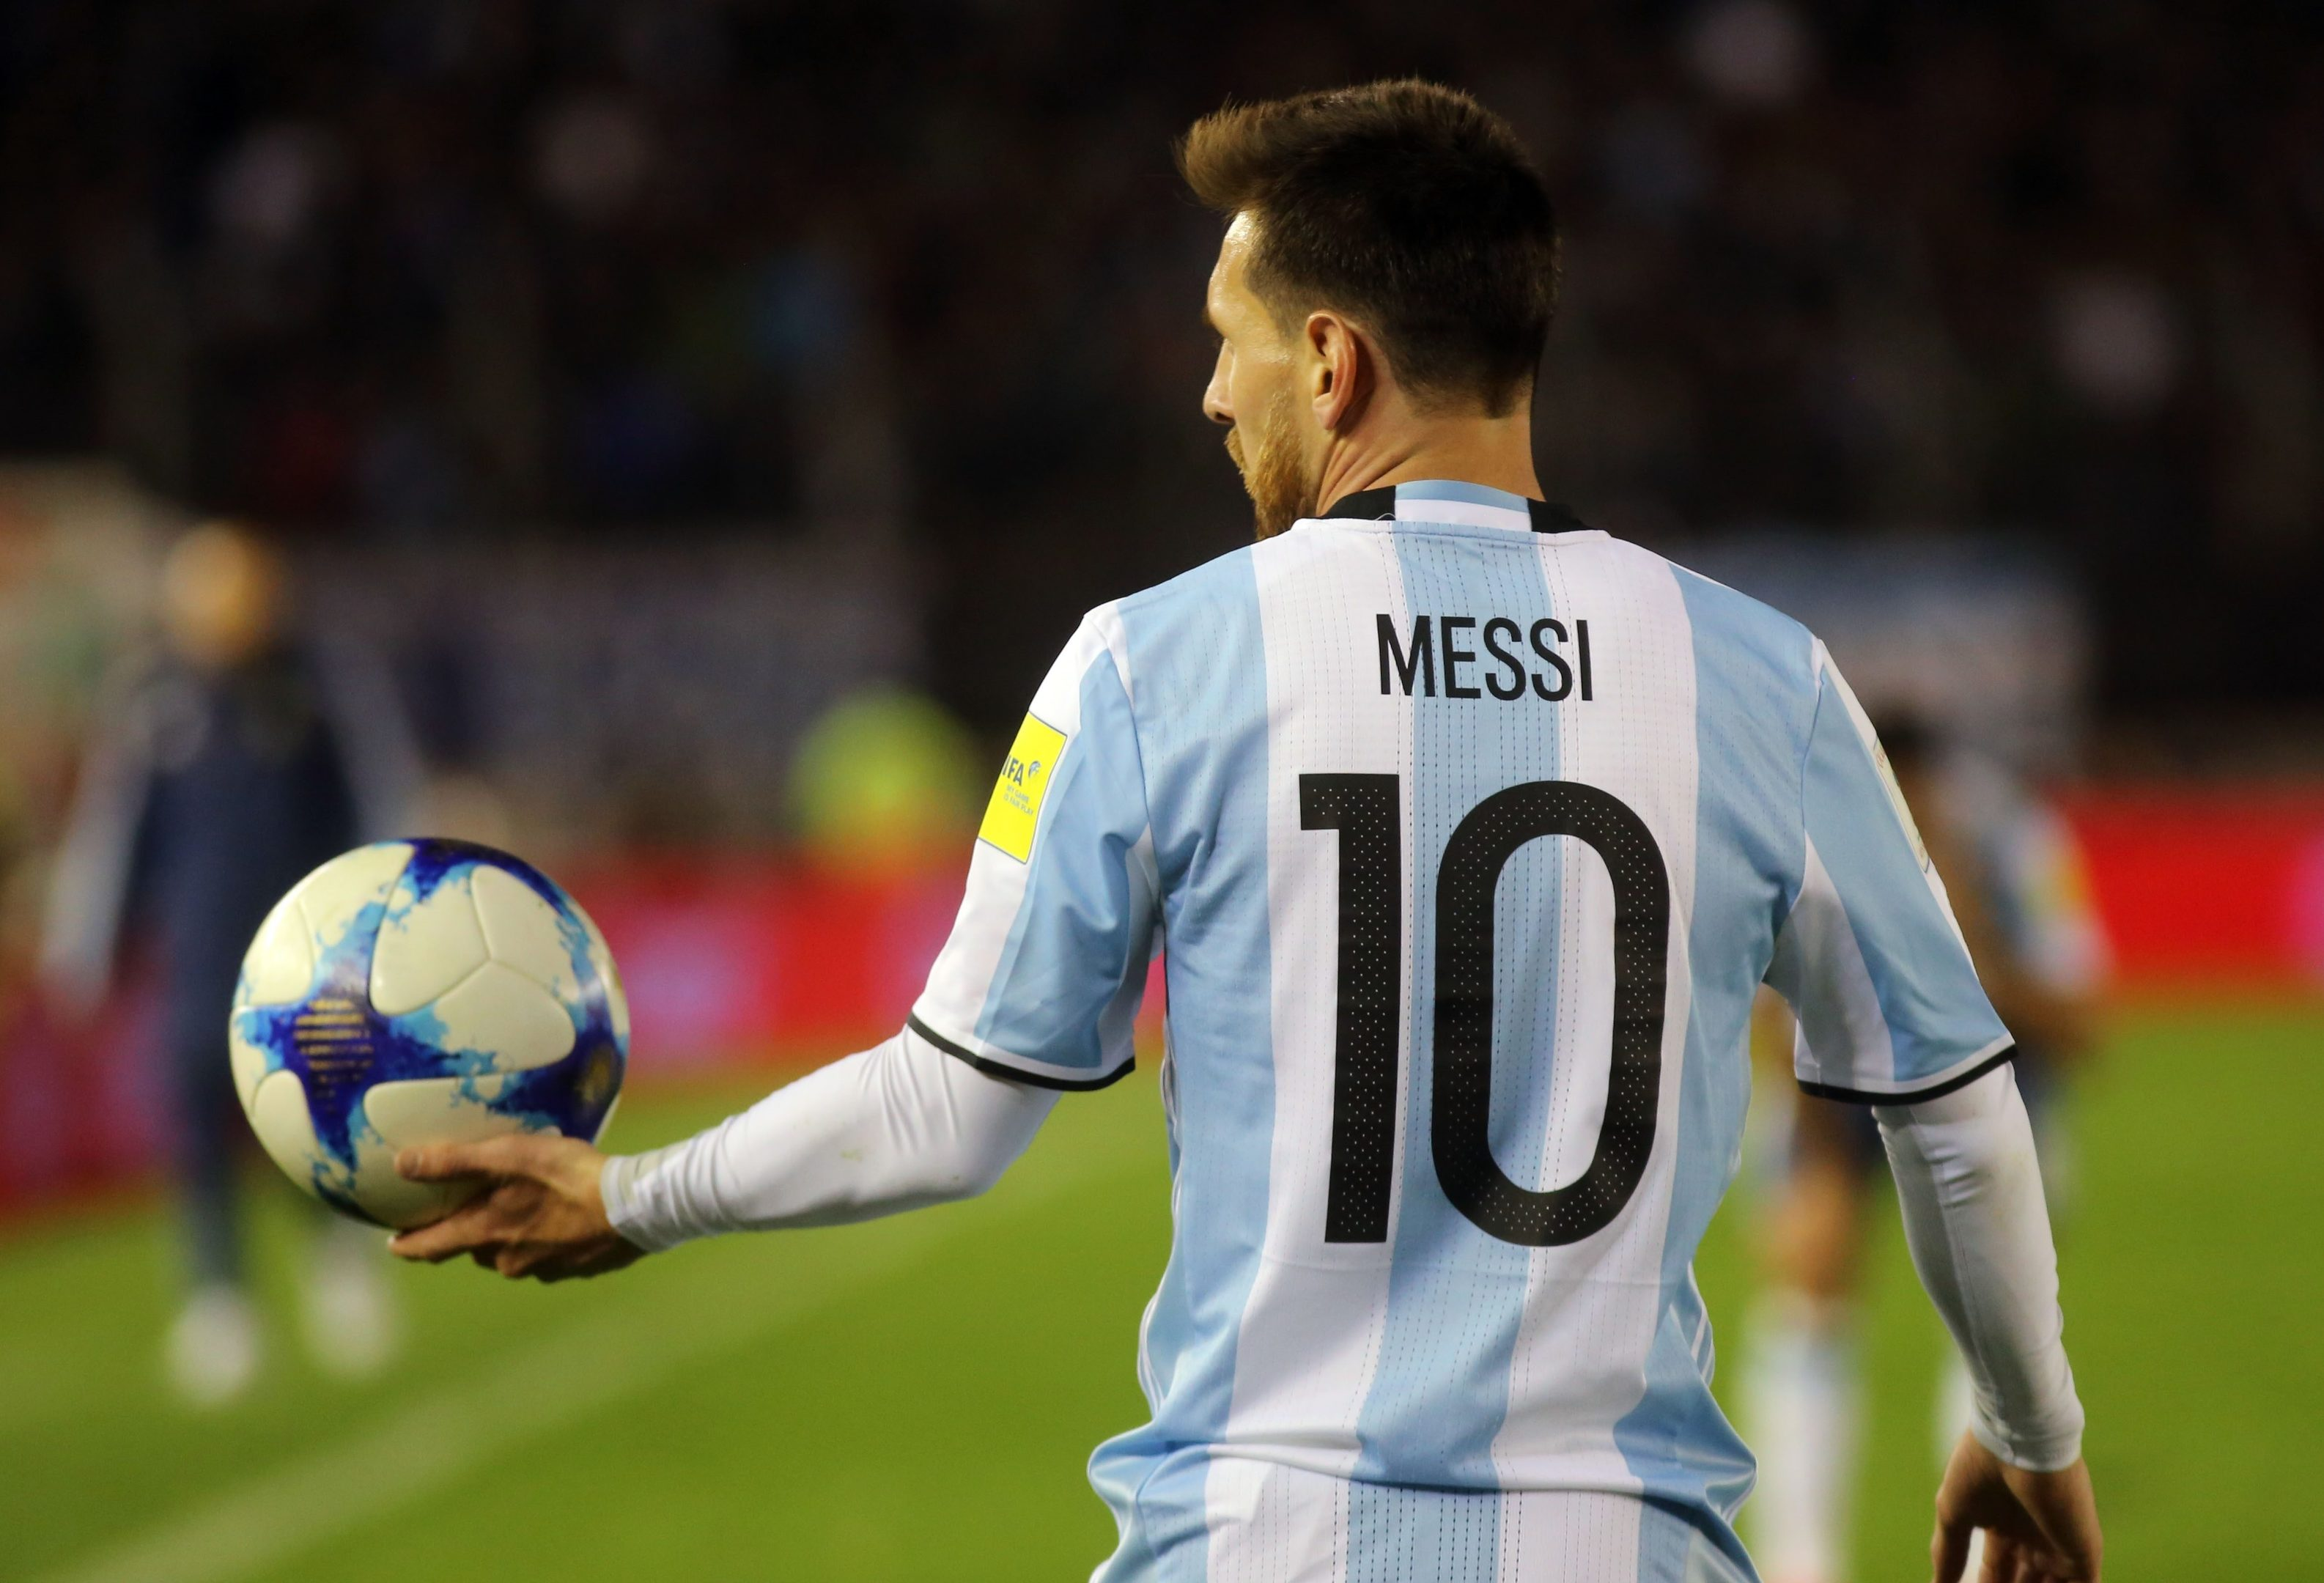 Lionel Messi (Mariano Sanchez/Anadolu Agency/Getty Images)